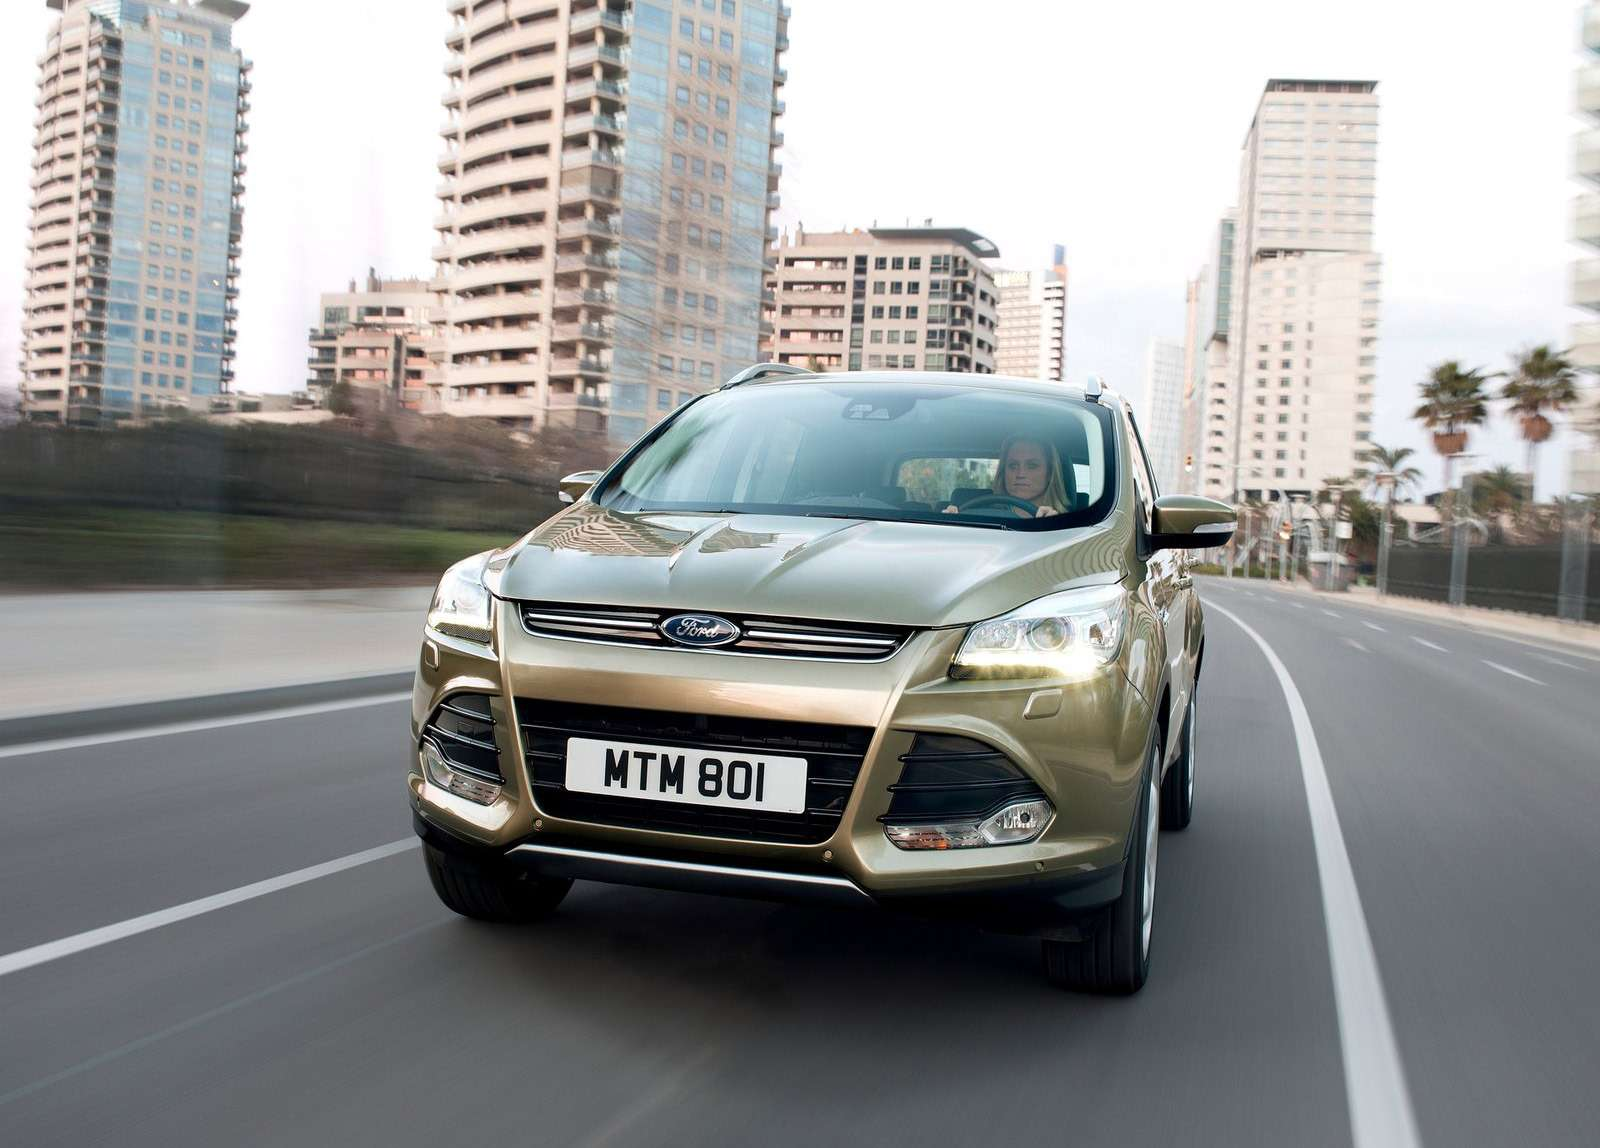 Ford-Kuga_2013_1600x1200_wallpaper_06